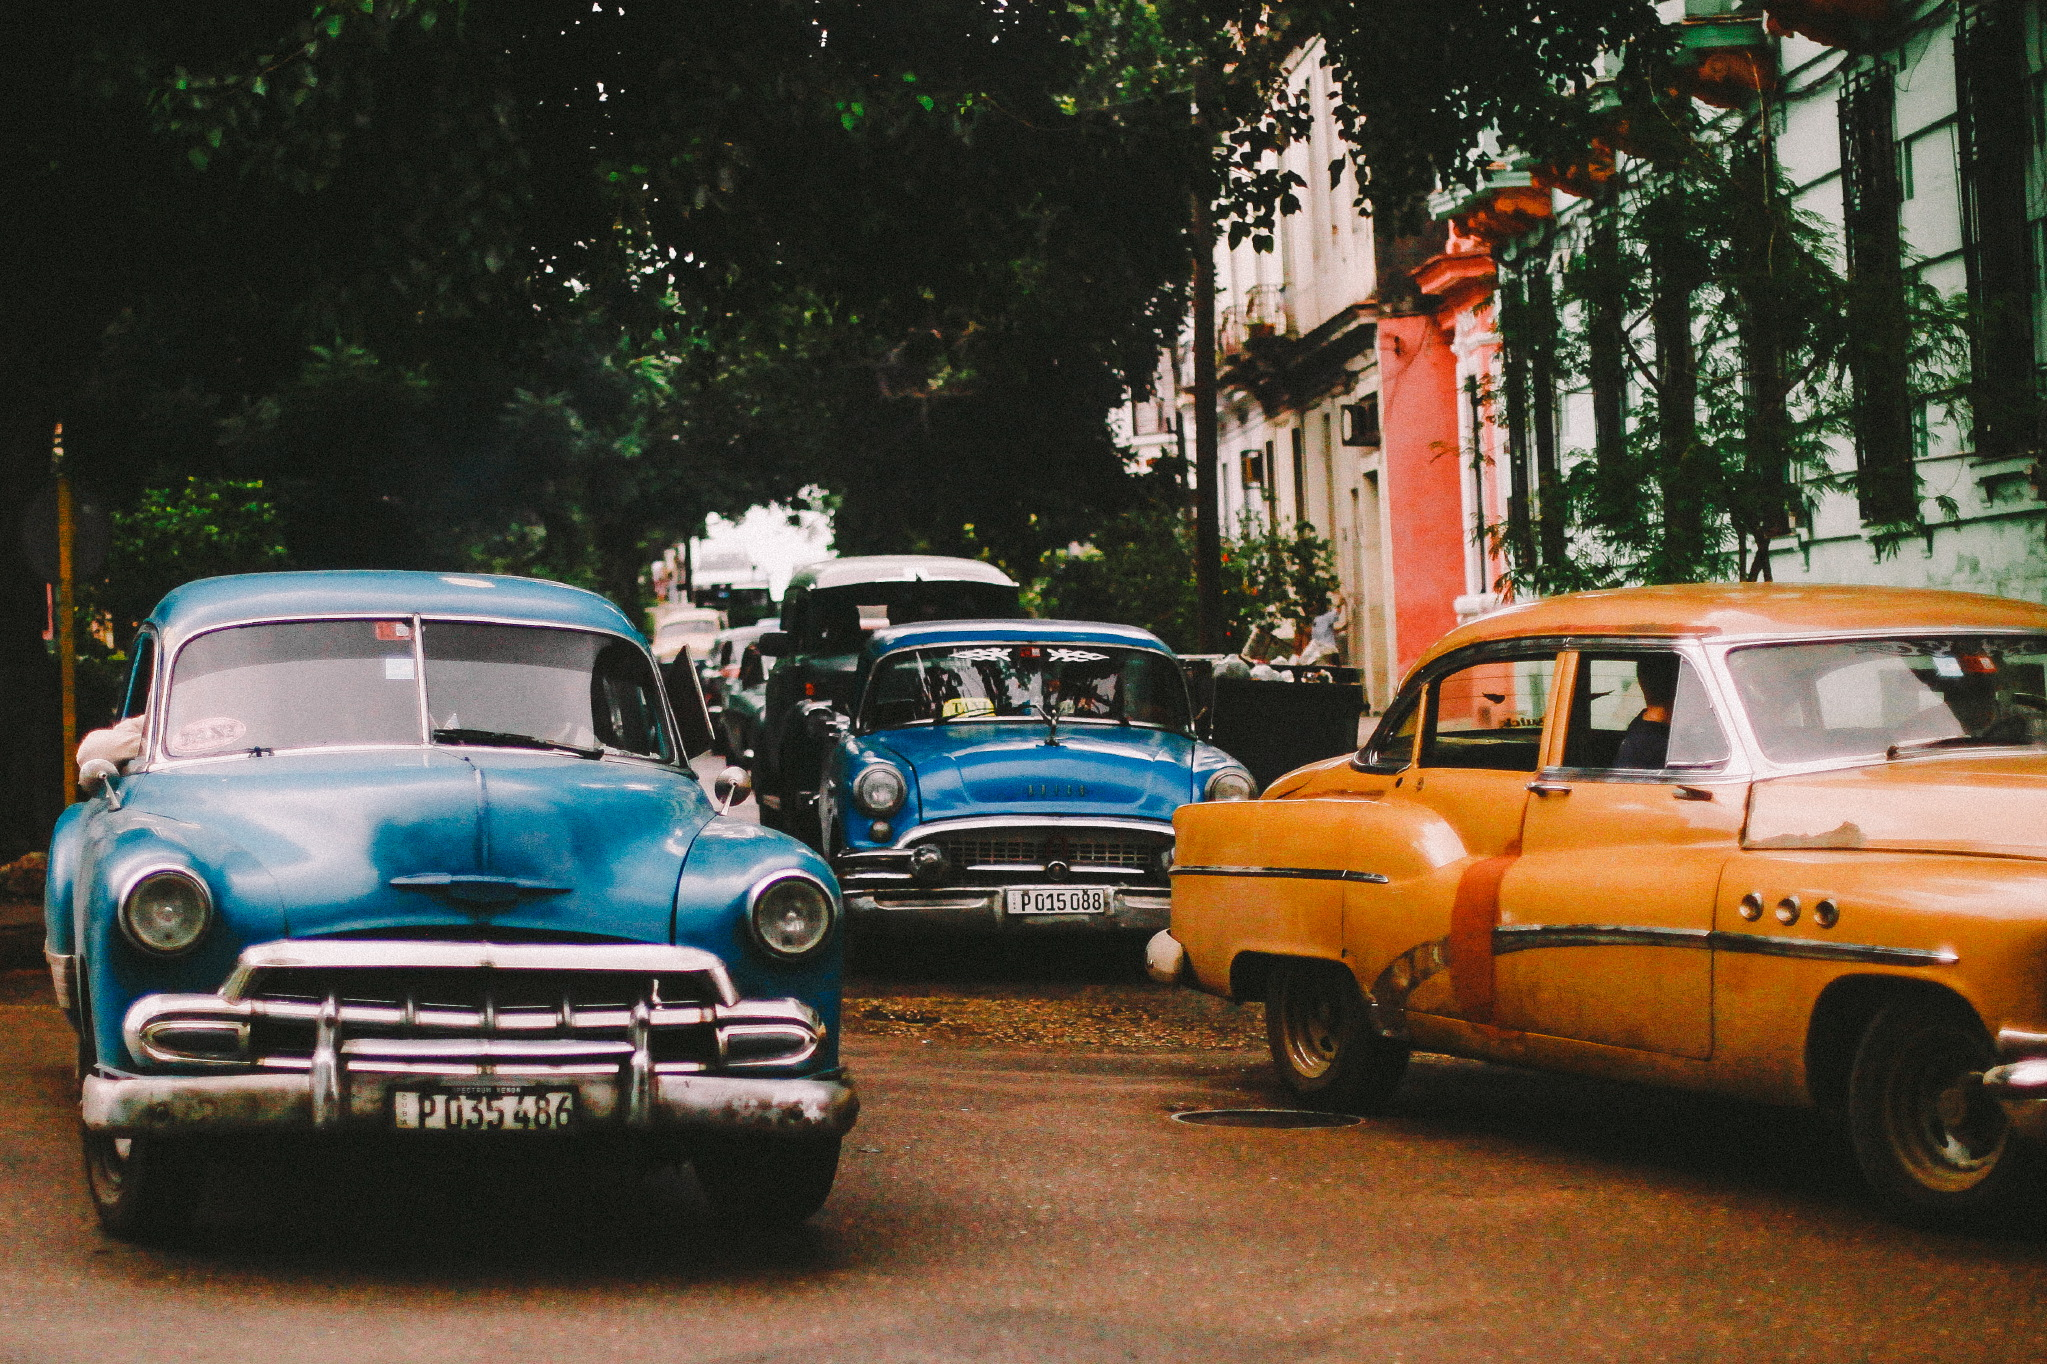 san diego wedding   photographer | busy cuban street with vibrantly colored cars